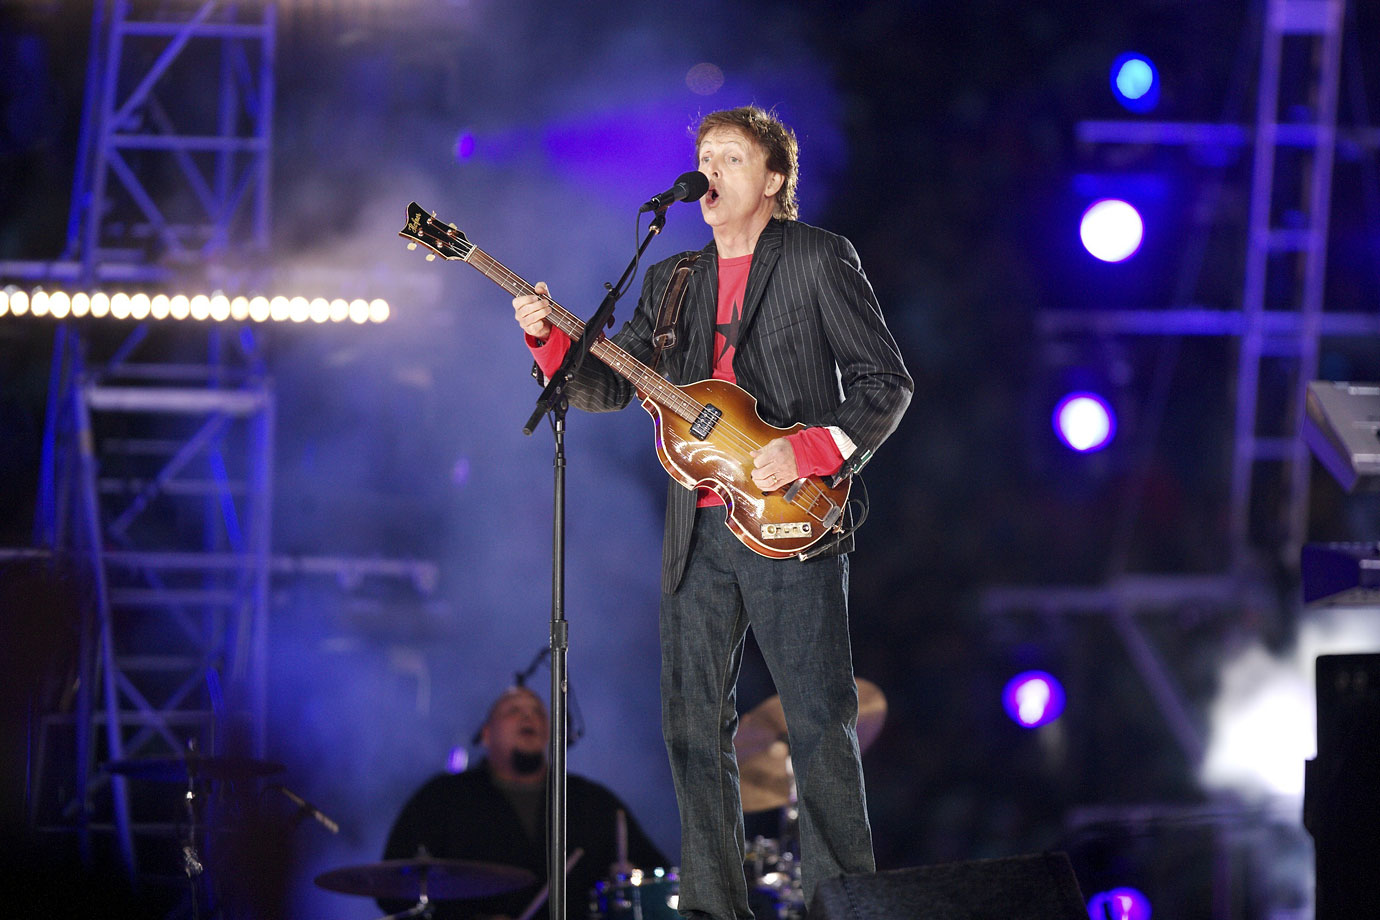 "With as many famous songs as Paul McCartney has to choose from, it's pretty hard to see how this act could have gone wrong. McCartney rocked out with ""Get Back"" and ""Live and Let Die"" before bringing the entire crowd in on a sing-along for ""Hey Jude."" He made for a thoroughly uncontroversial and entertaining halftime show, exactly what the Super Bowl wanted after the Janet Jackson wardrobe malfunction of the year before."